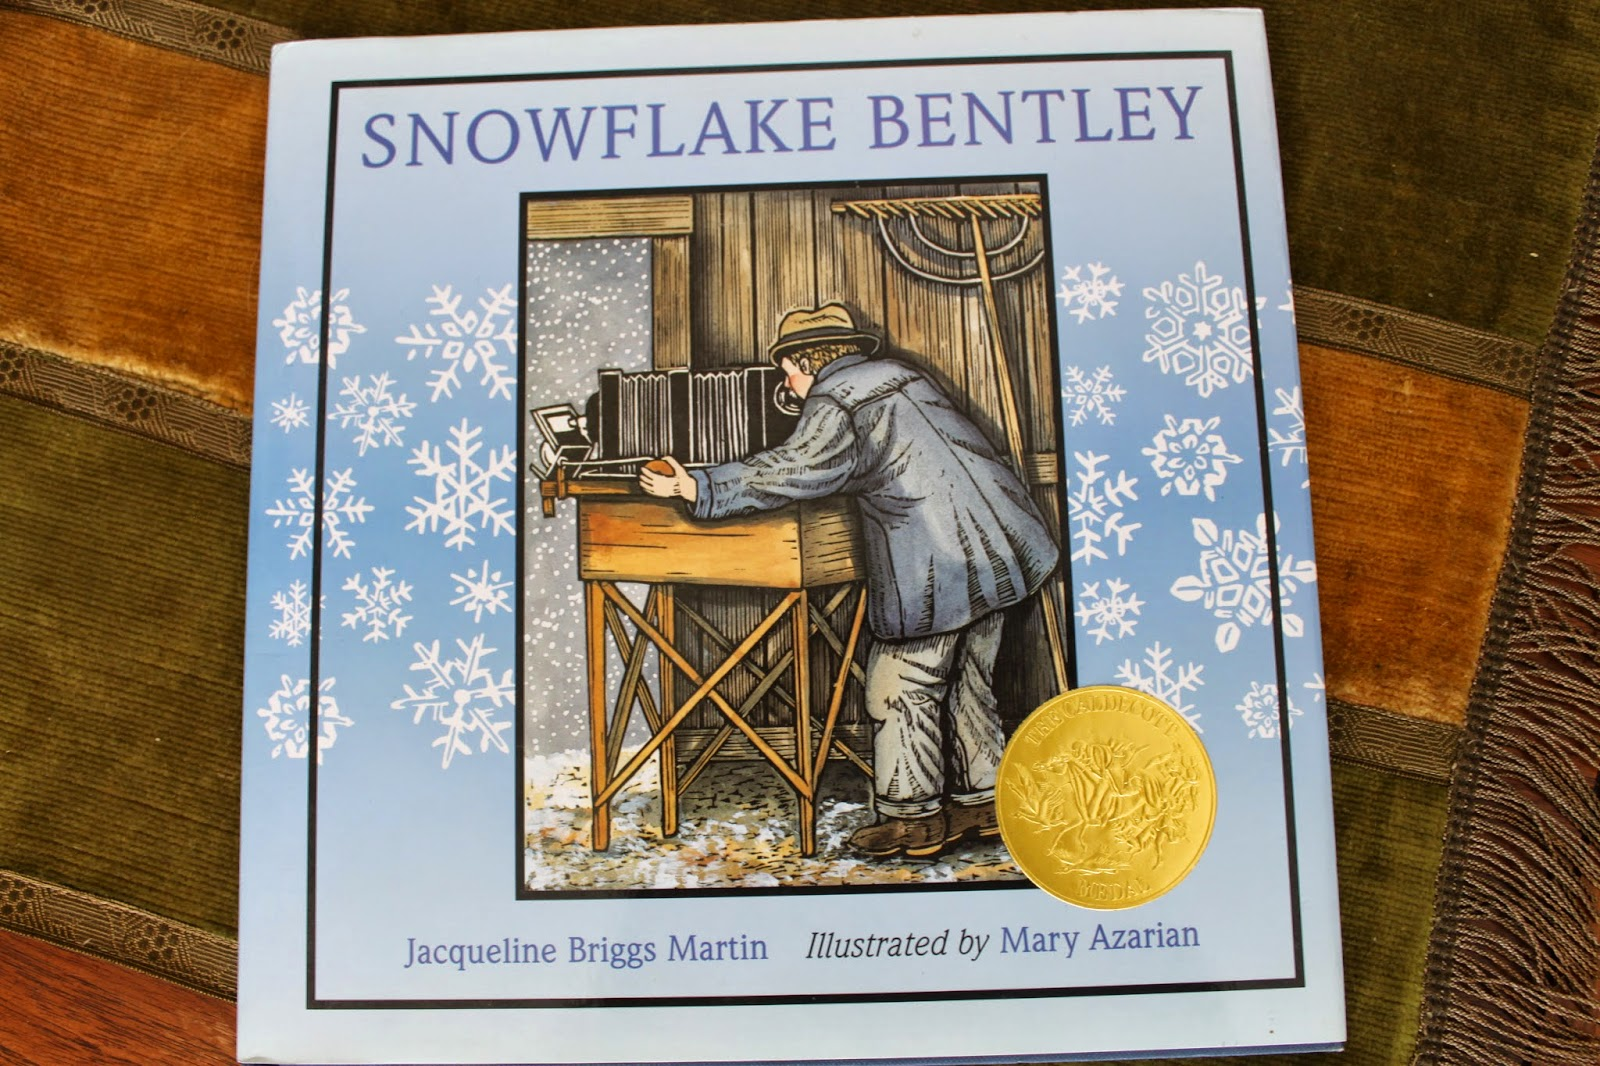 children bentley the true story img snowflake s book of man more books